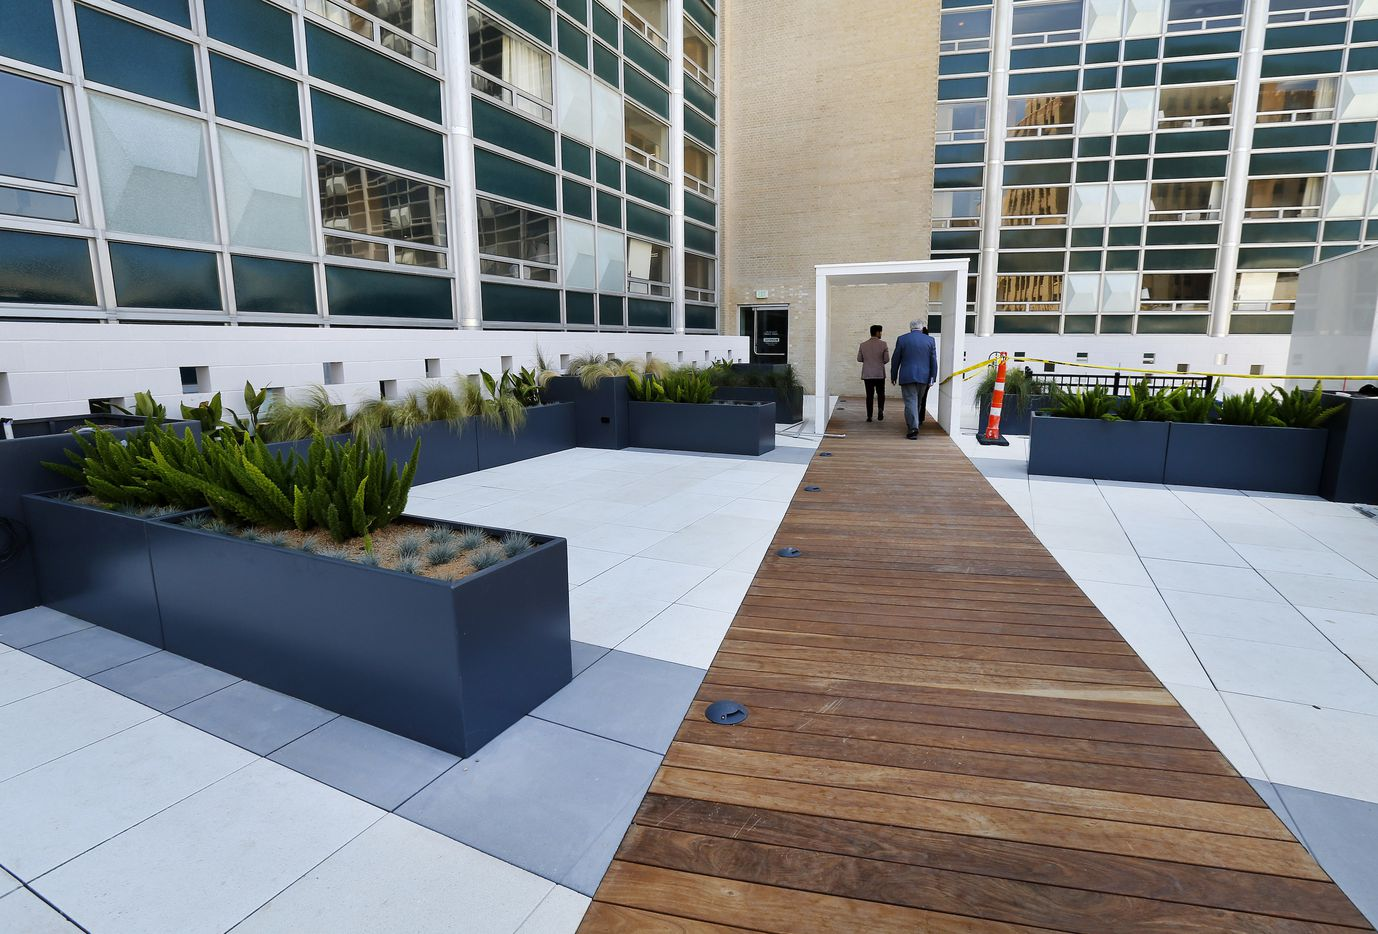 A wooden boardwalk leads to and from the pool area on the fourth floor at the Statler Residences in downtown Dallas.